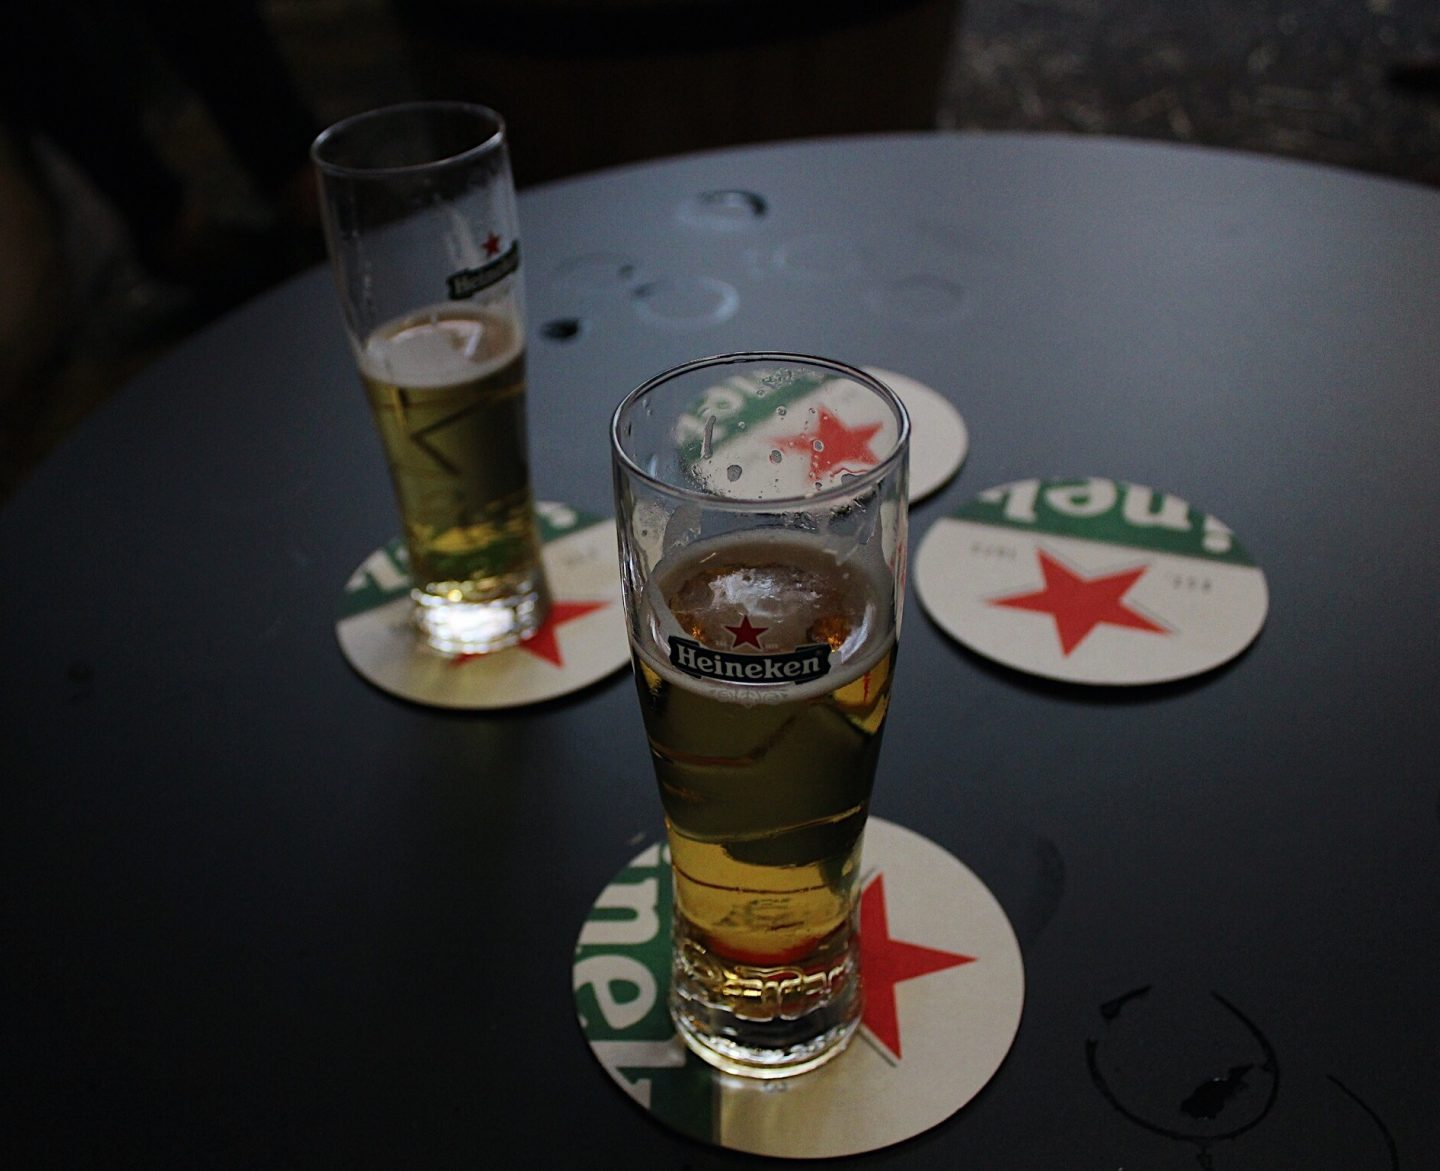 Trying Heineken beer after the tour in Amsterdam